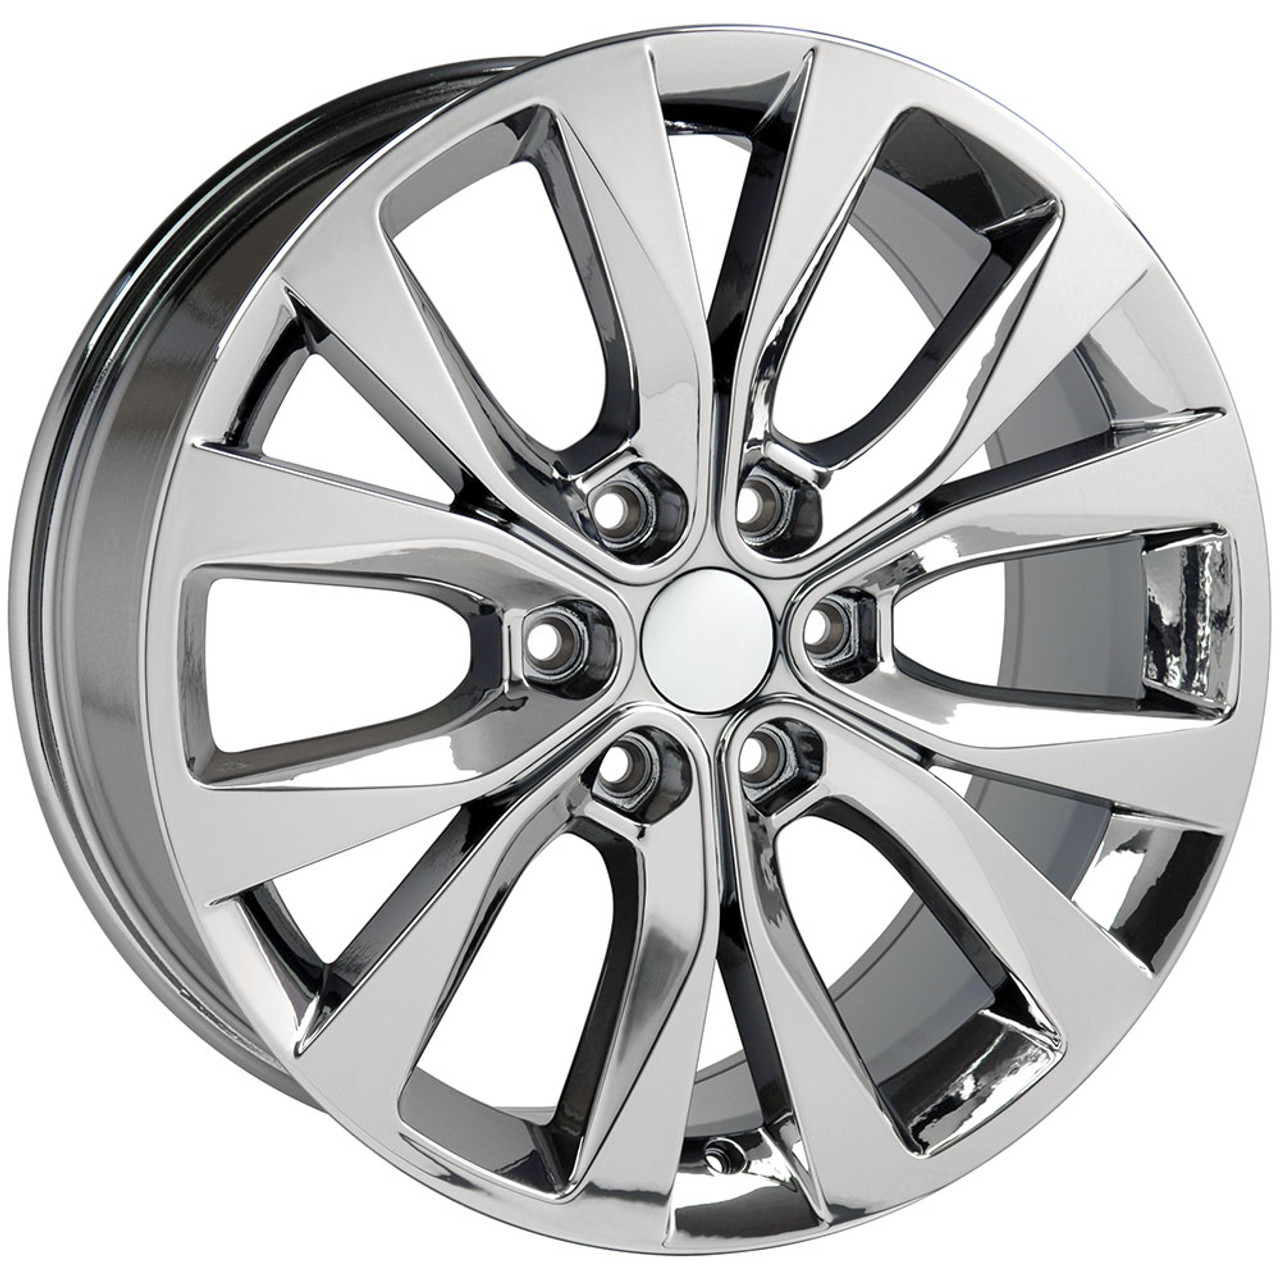 Ford F 150 Wheels >> 20 Fits Ford F 150 Wheels Pvd Chrome Set Of 4 20x8 5 Rims Stock